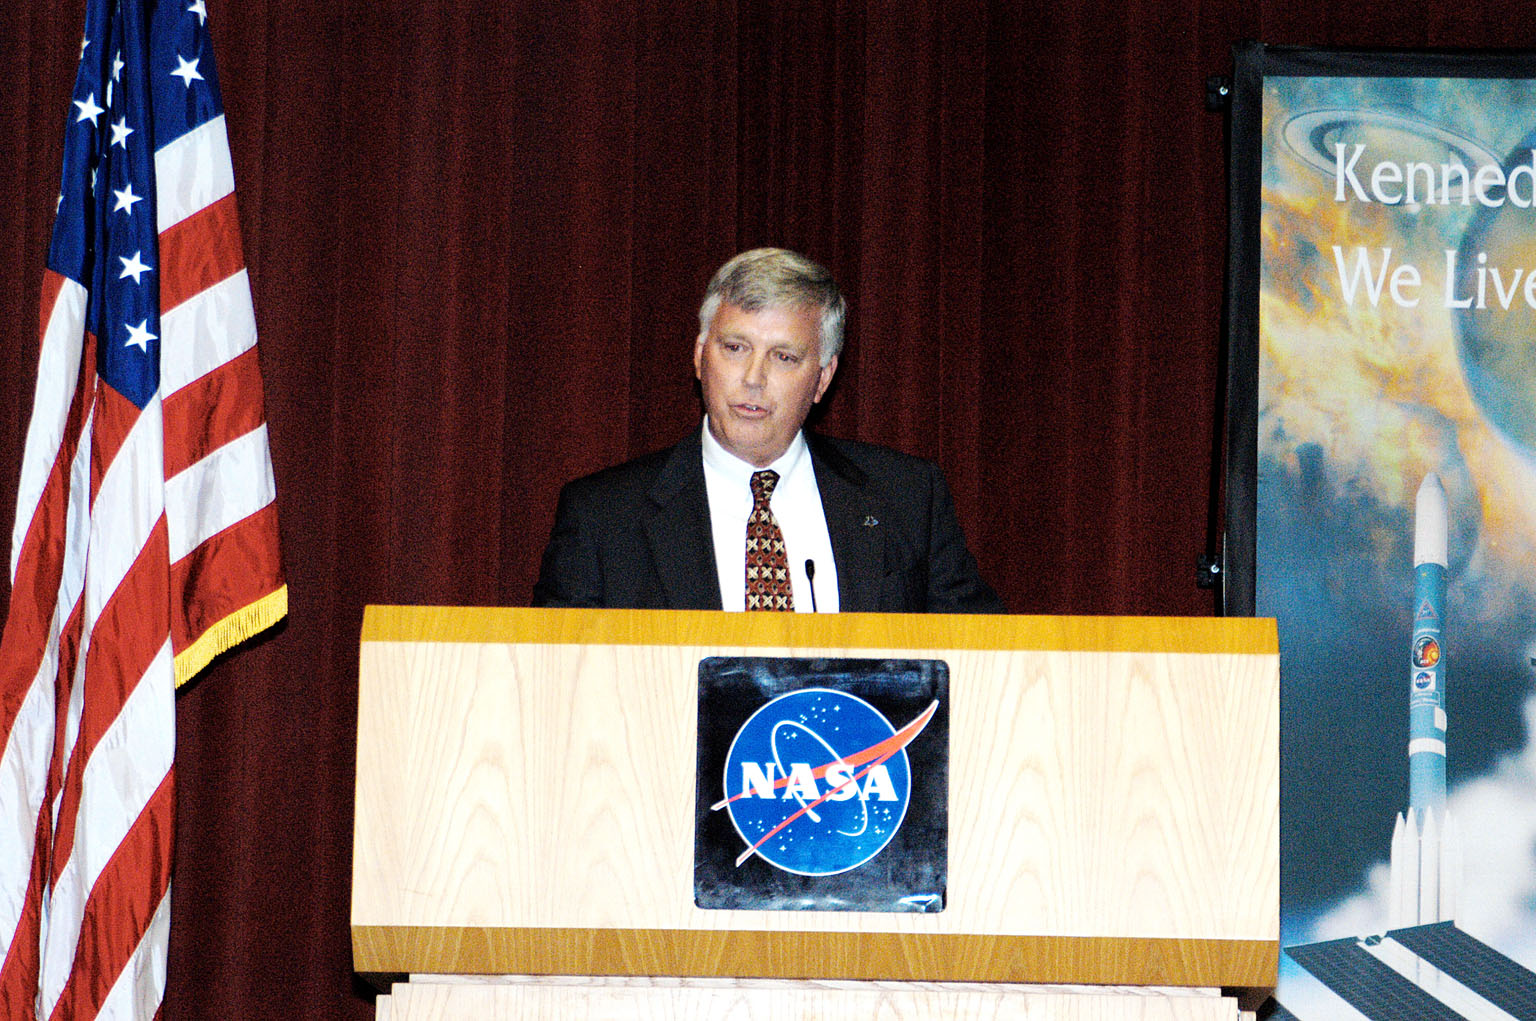 KENNEDY SPACE CENTER, FLA. - KSC Deputy Director James W. Kennedy addresses a group of KSC employees assembled in the KSC Training Auditorium. The occasion is the announcement of Kennedy as the next director of the NASA Kennedy Space Center (KSC) in Florida. He has served as KSC's deputy director since November 2002. He will succeed KSC Director Roy D. Bridges, who was appointed on June 13 to lead NASA's Langley Research Center, Hampton, Va.